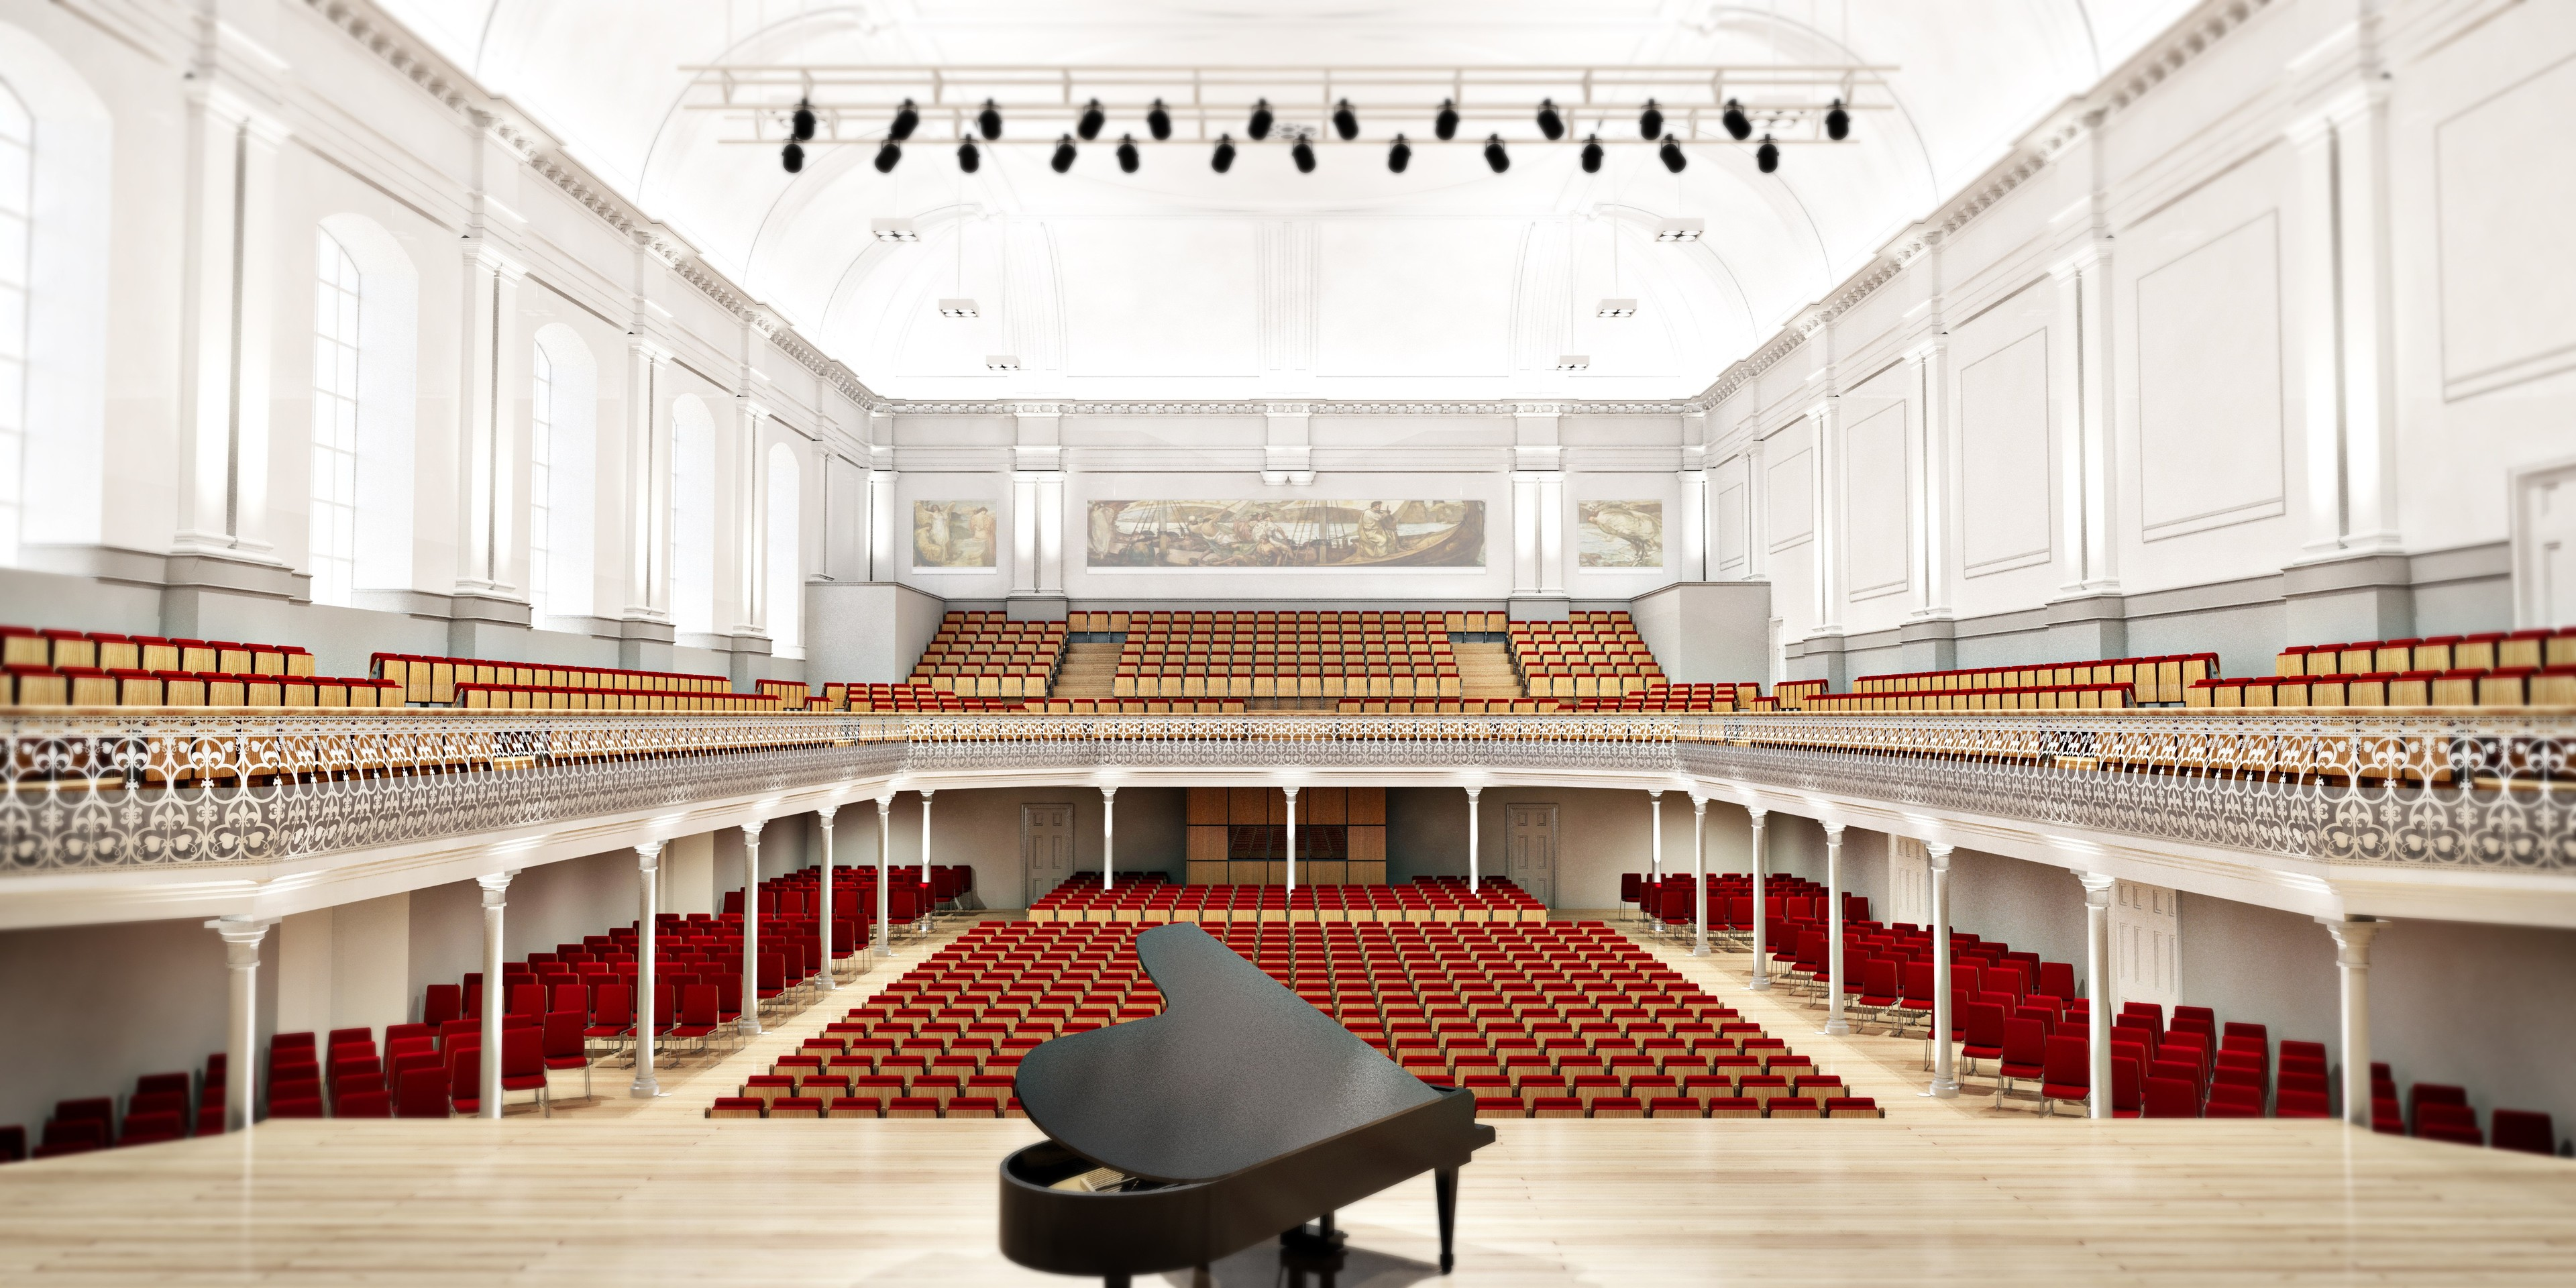 An artist's impression of how the Music Hall could look.